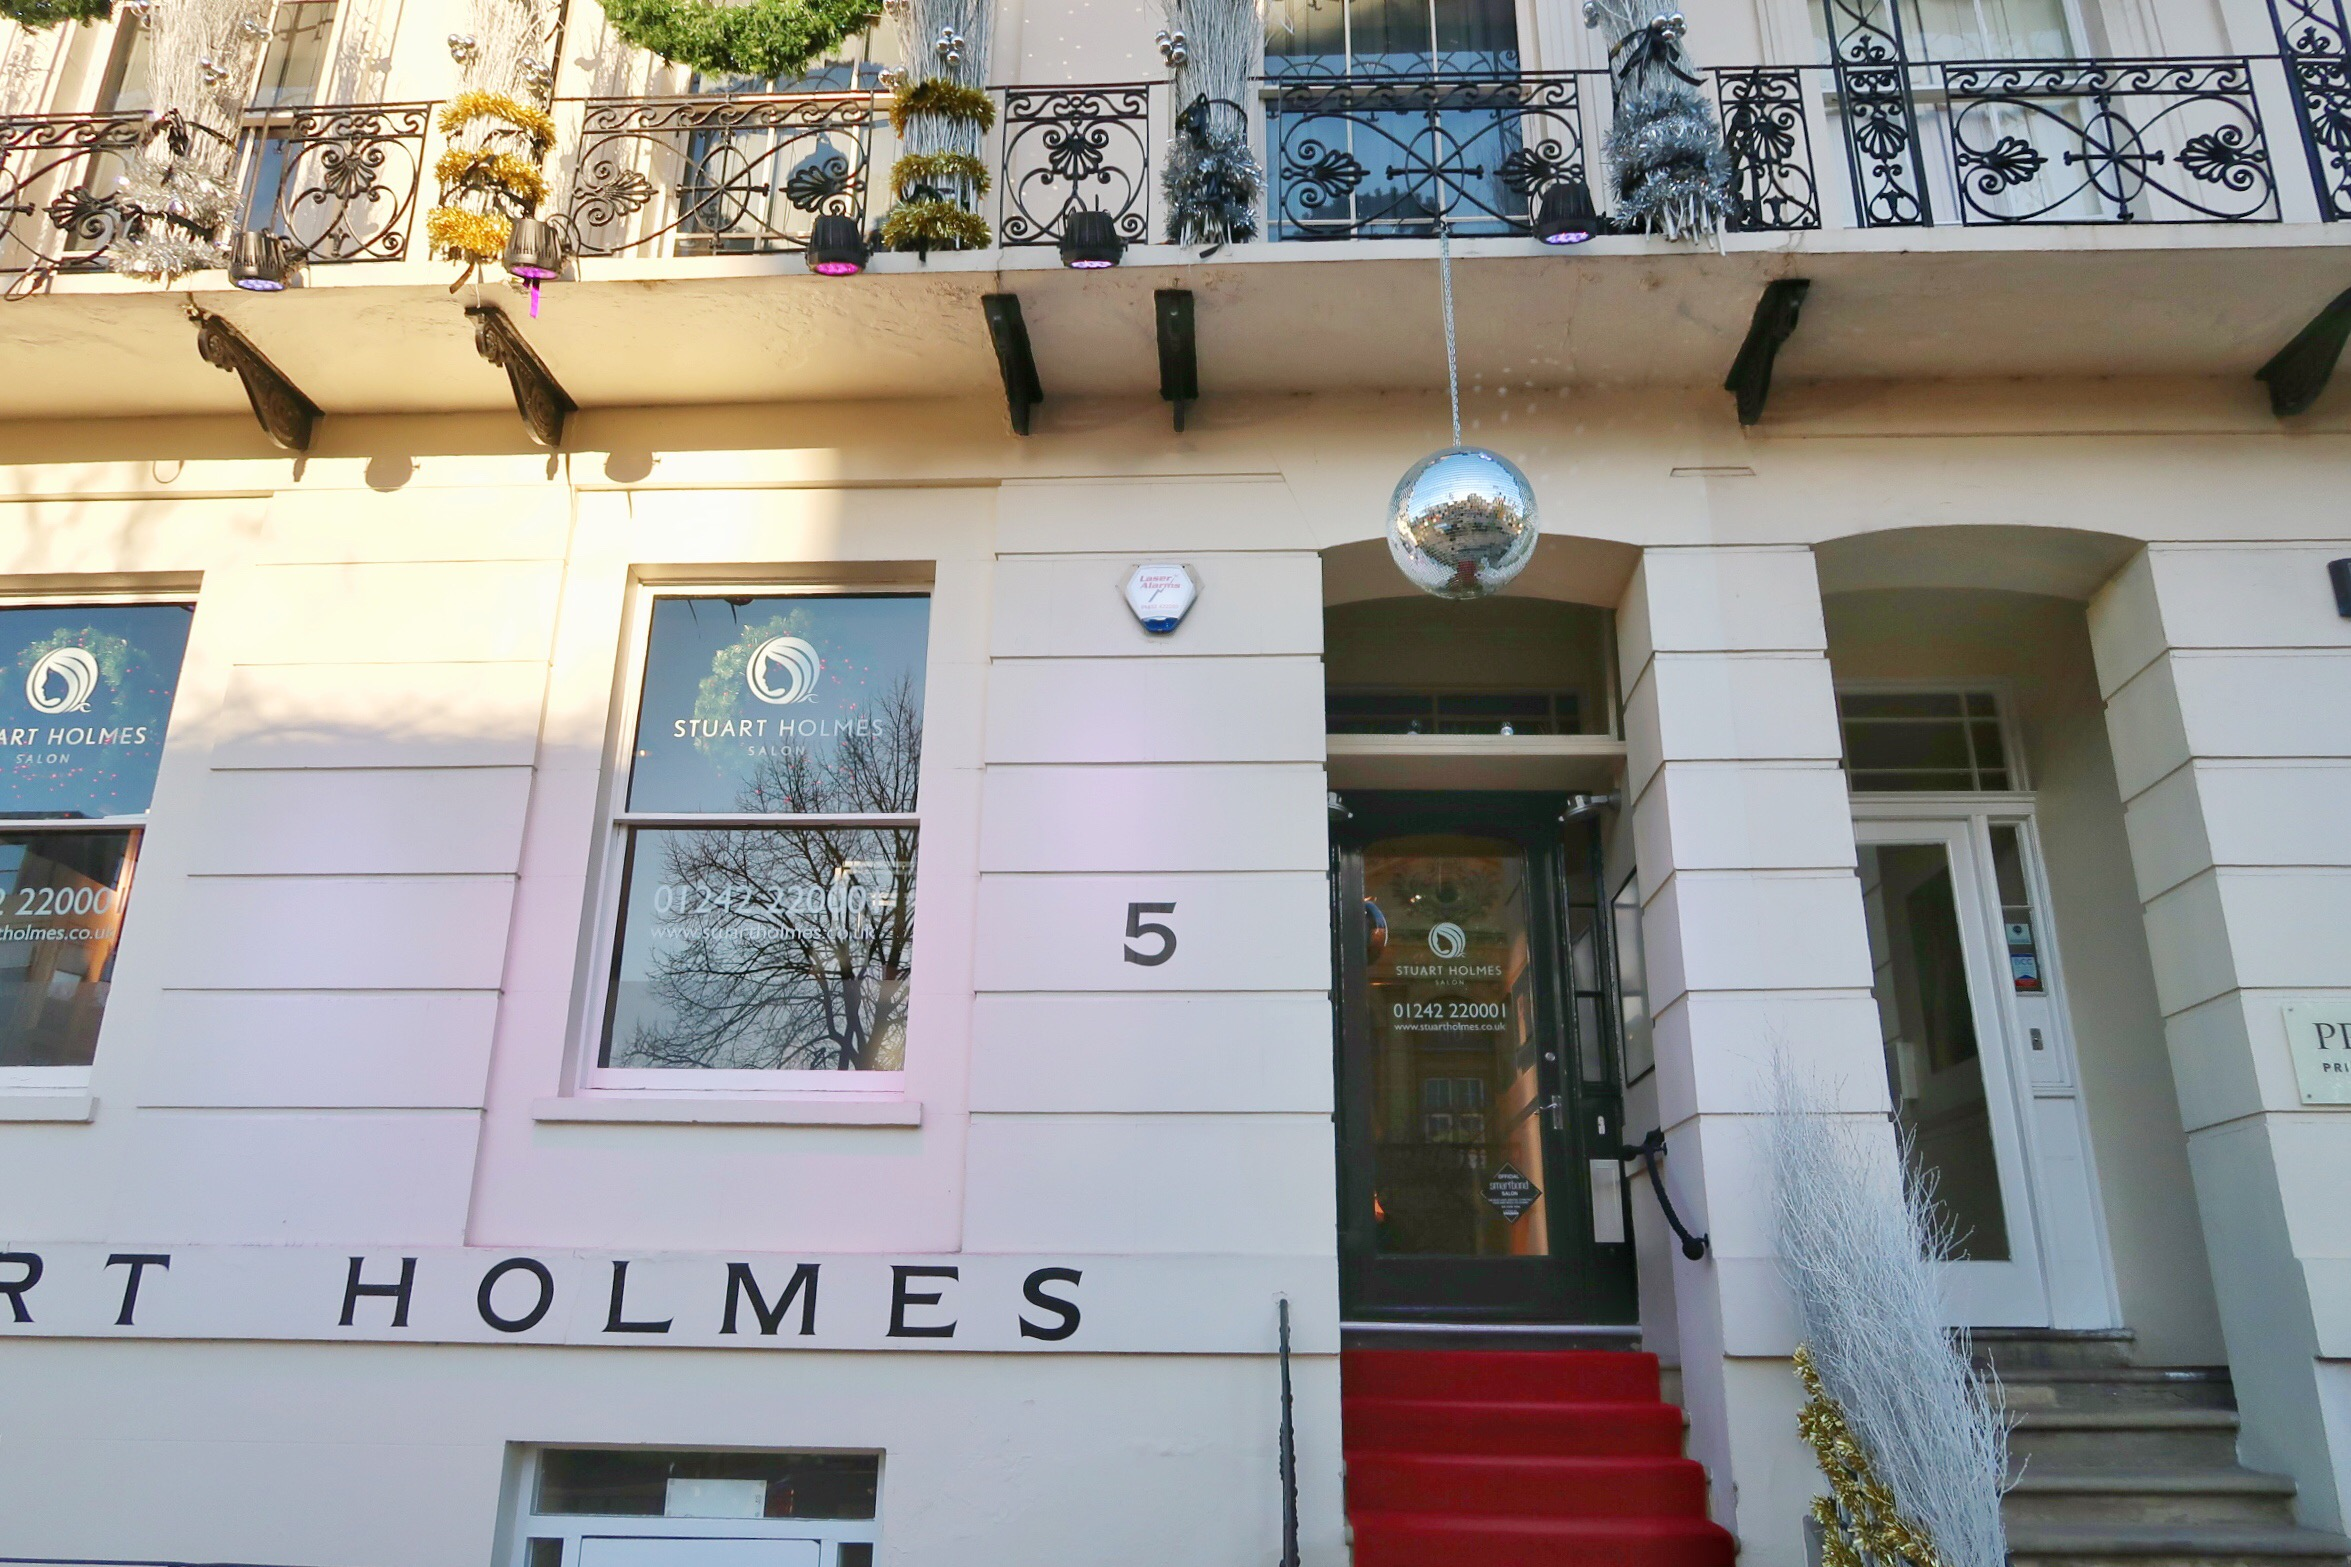 The lovely exterior of the Stuart Holmes salon with the Christmas decorations on the wrought iron balcony and the giant disco ball above the door.